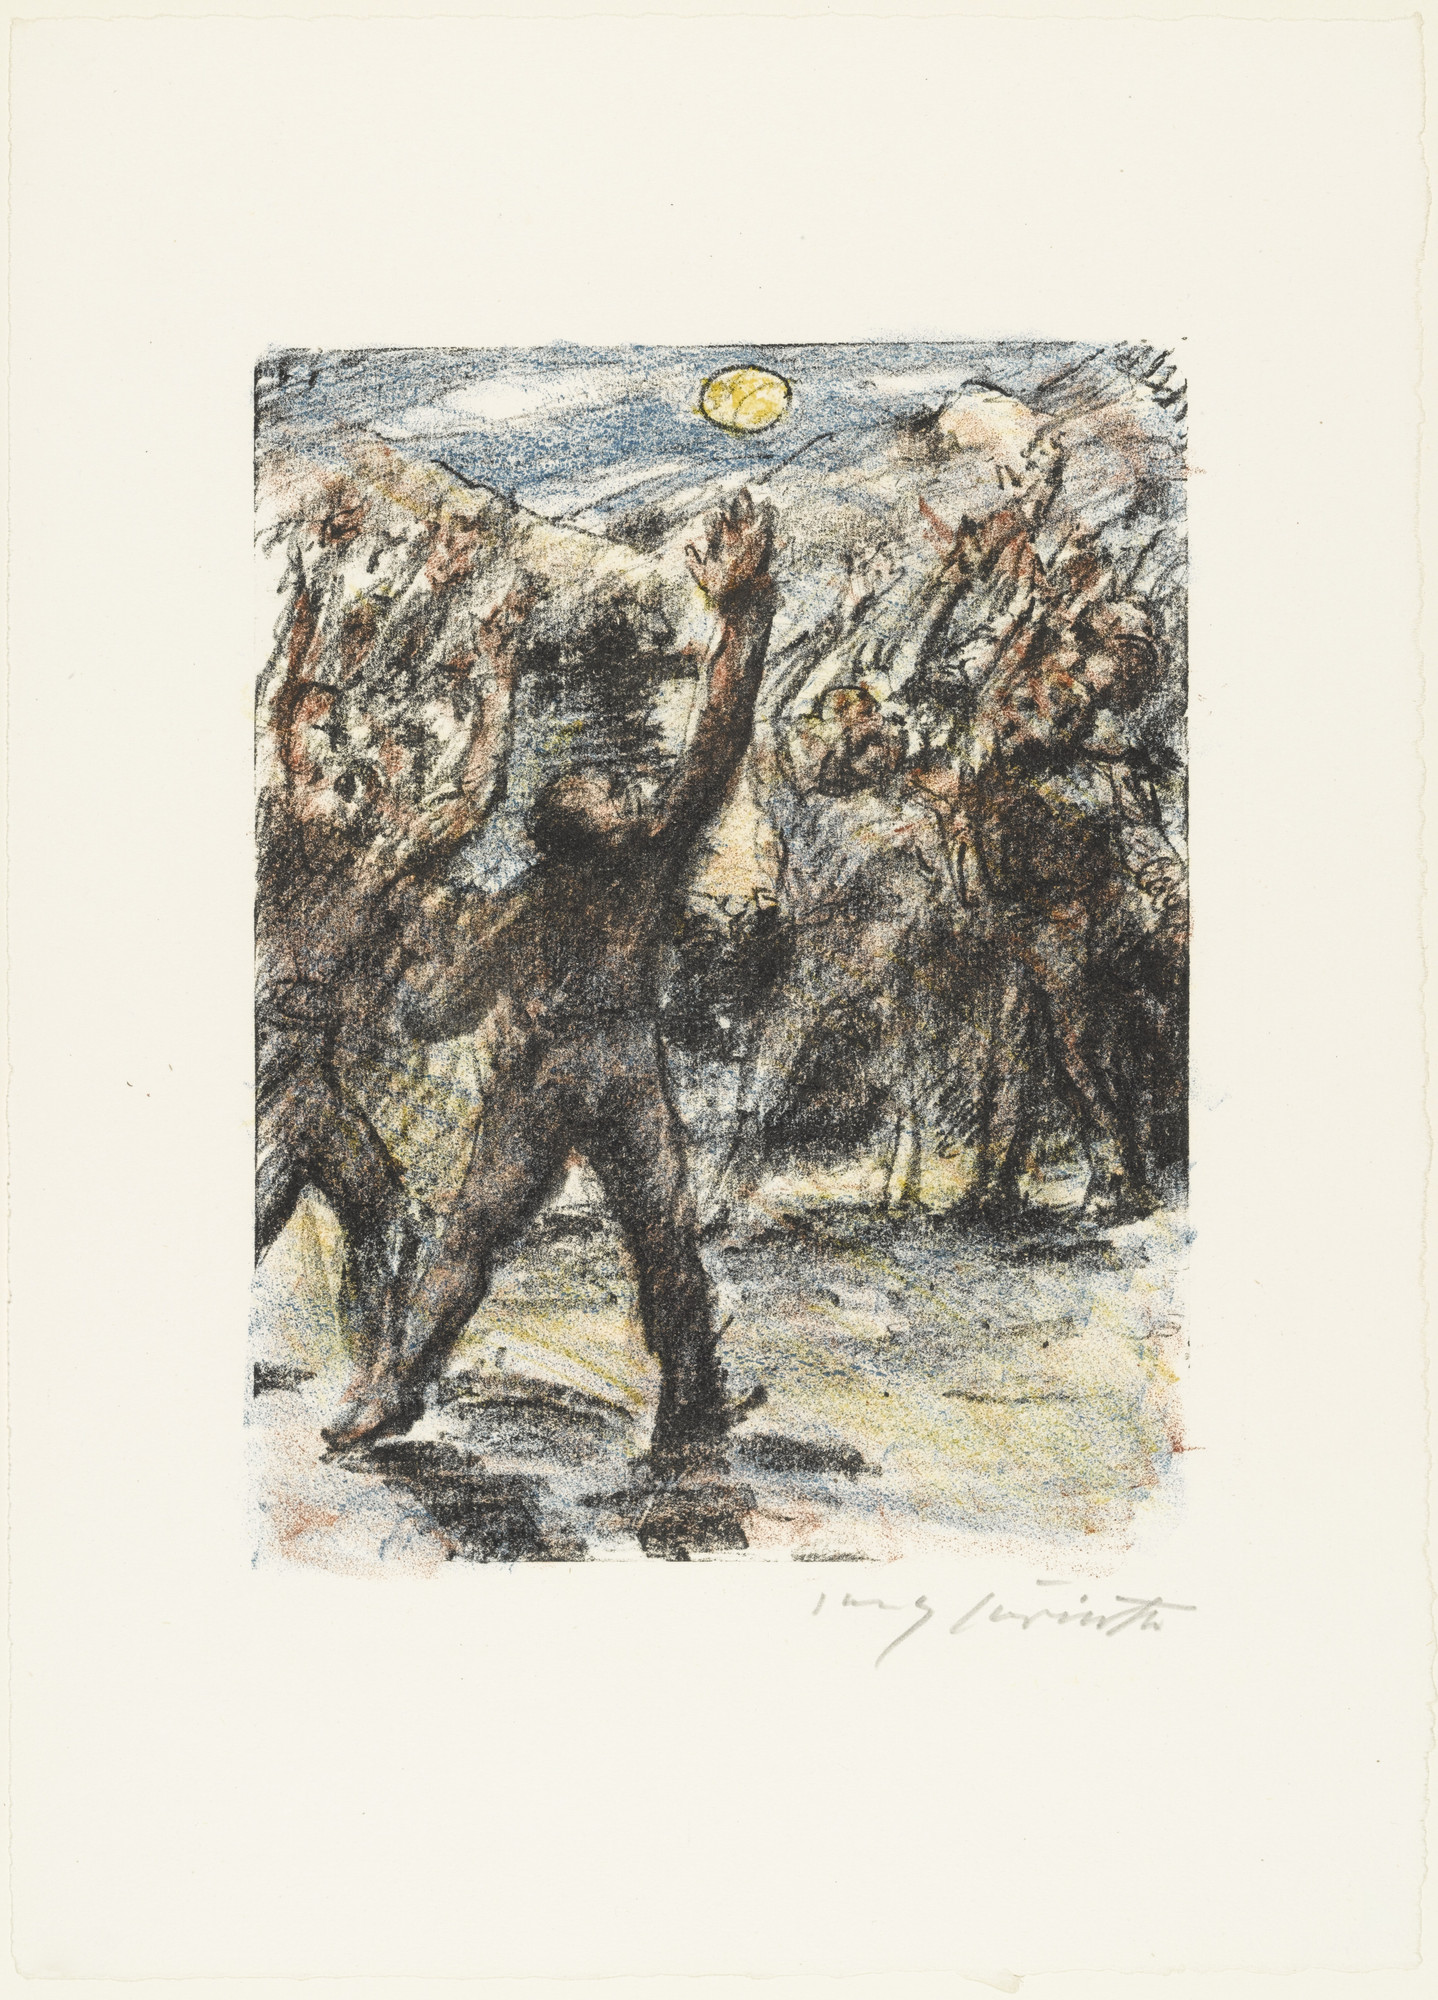 Lovis Corinth. The Oath on Rütli (Der Schwur auf dem Rütli) from William Tell (Wilhelm Tell). (1923-24, published 1925)